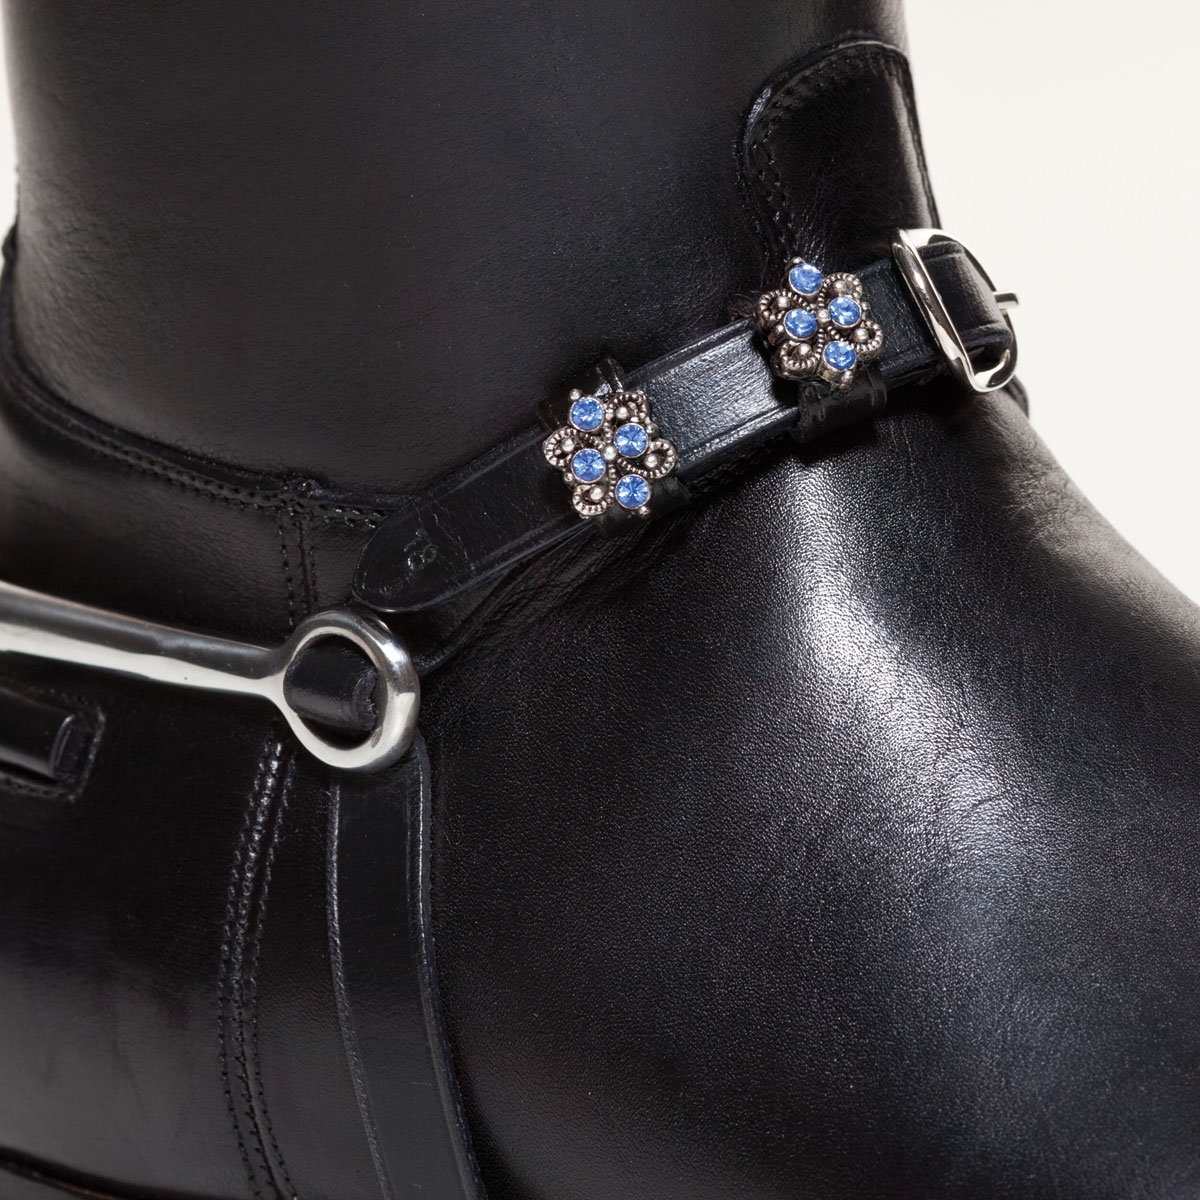 Spur Straps by Browbands with Bling